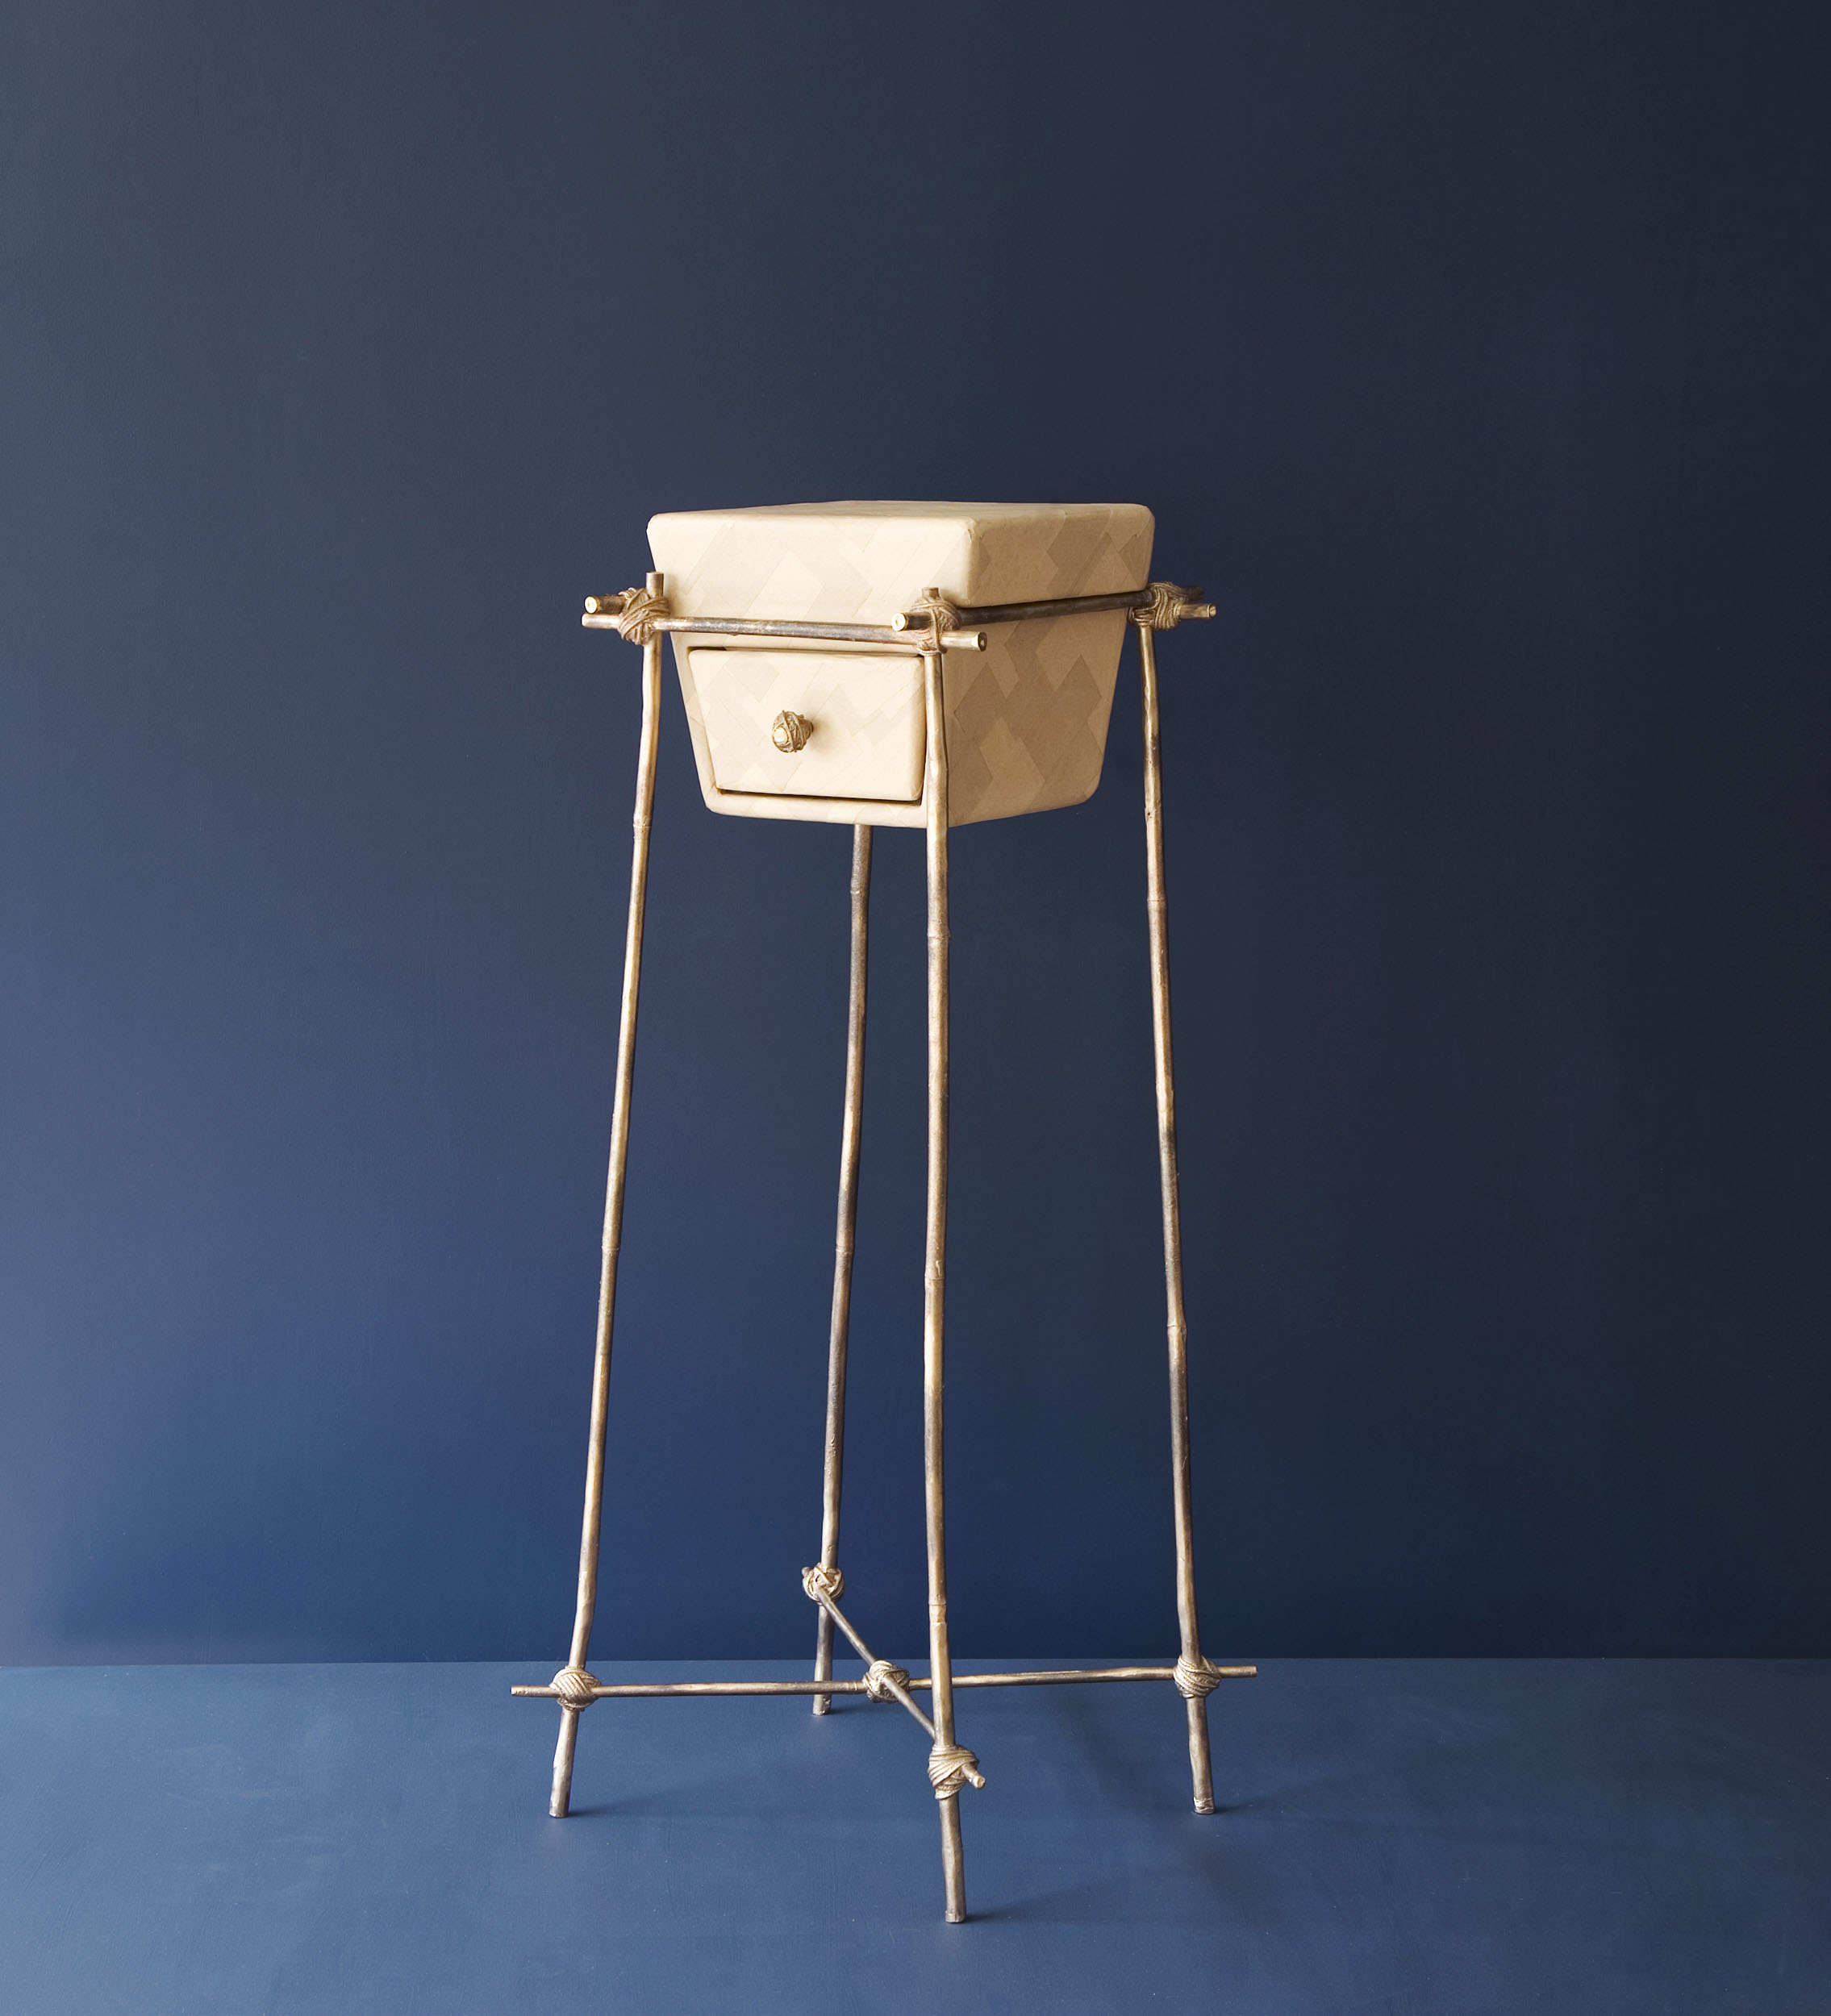 Les furniture piece with bronze cast bamboo frame and gum paper drawer